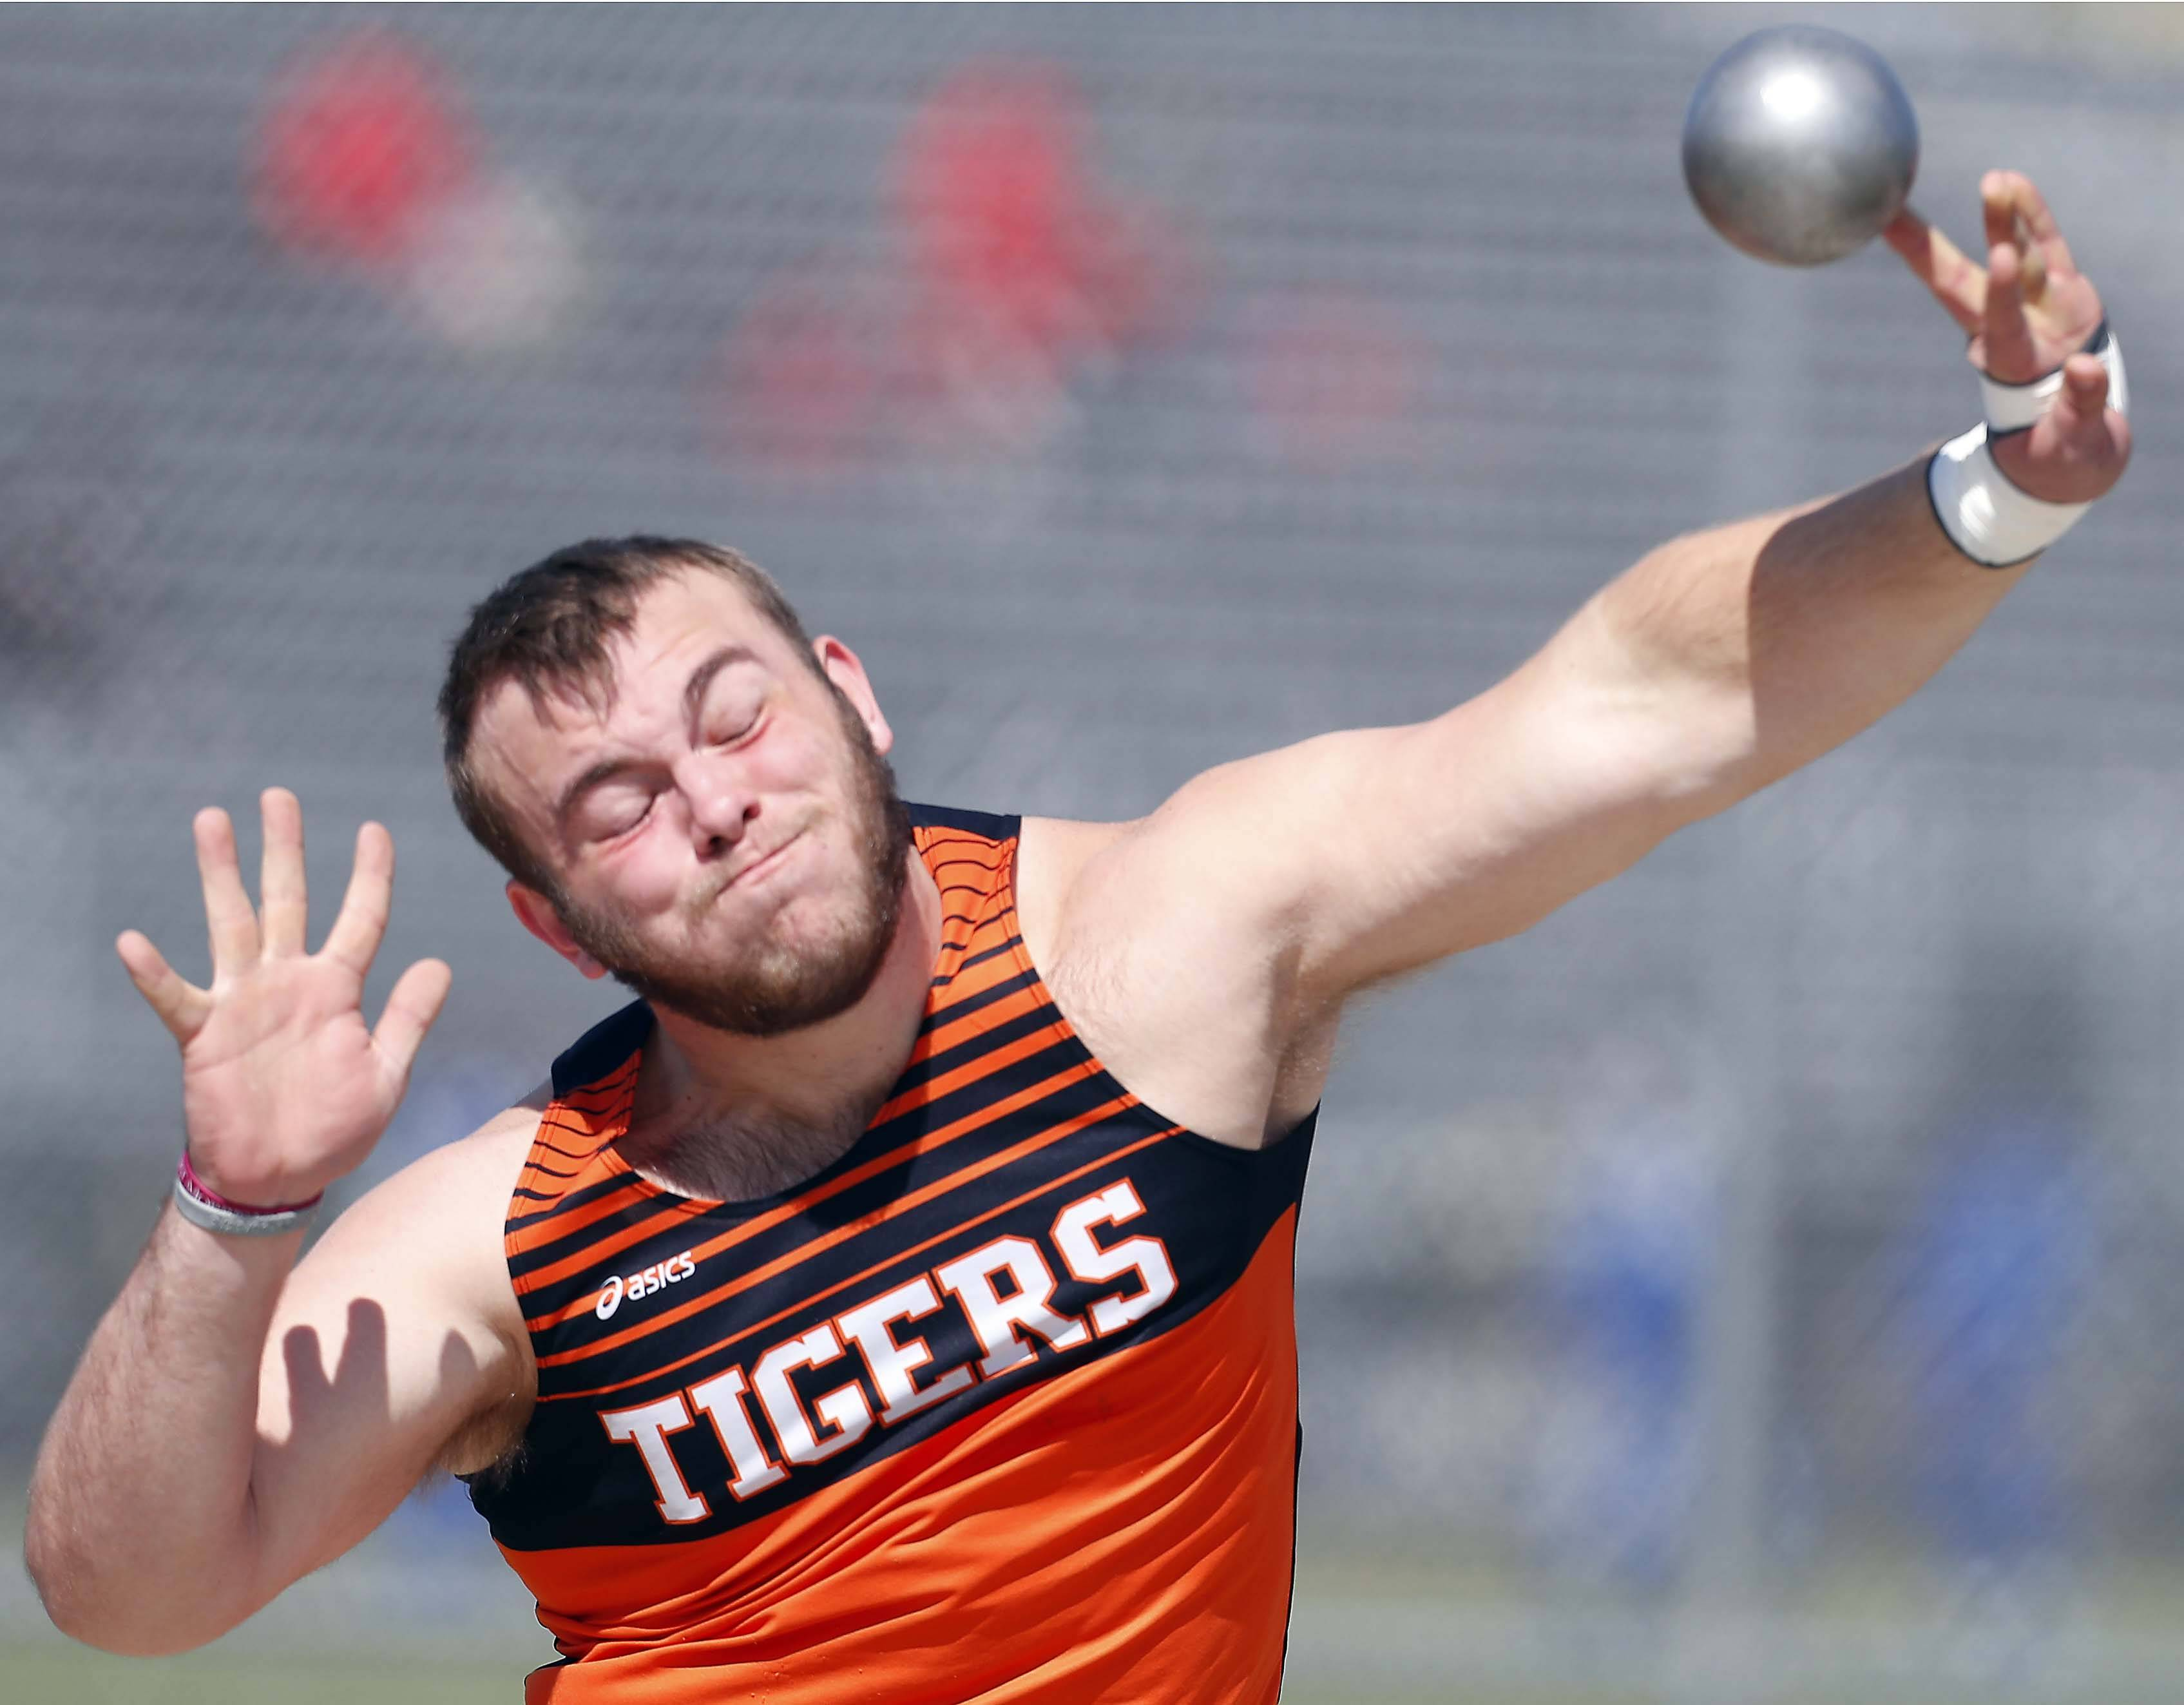 Wheaton Warrenville South's Bill Winfrey competes in the shot put Saturday during the Metea Valley boys track invitational in Aurora.